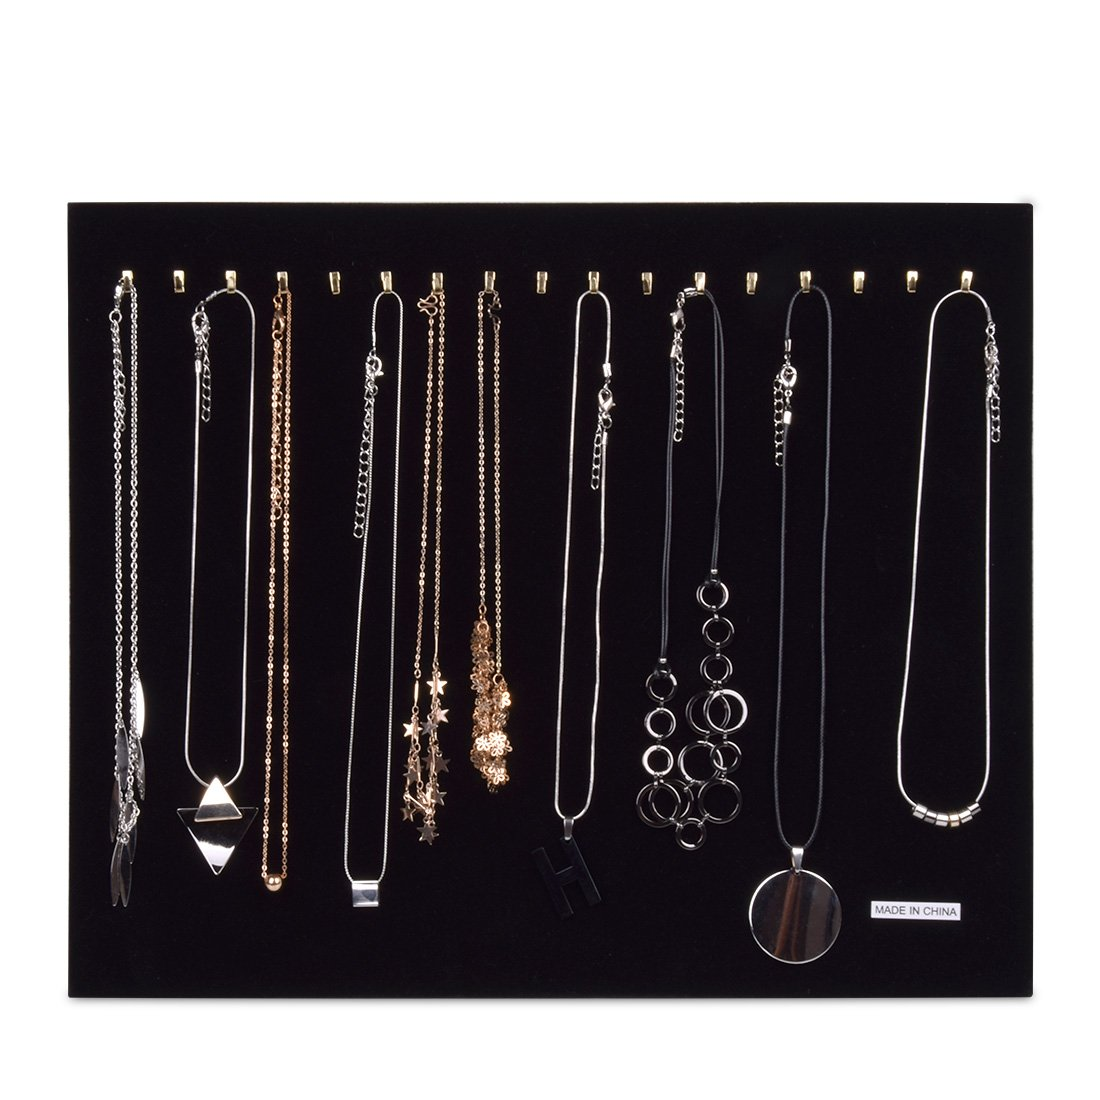 Hotusi Black Velvet Necklace Bracelet Chain Jewelry Display Holder Stand Organizer(Holds up to 17 Necklaces,Necklaces Not Included)